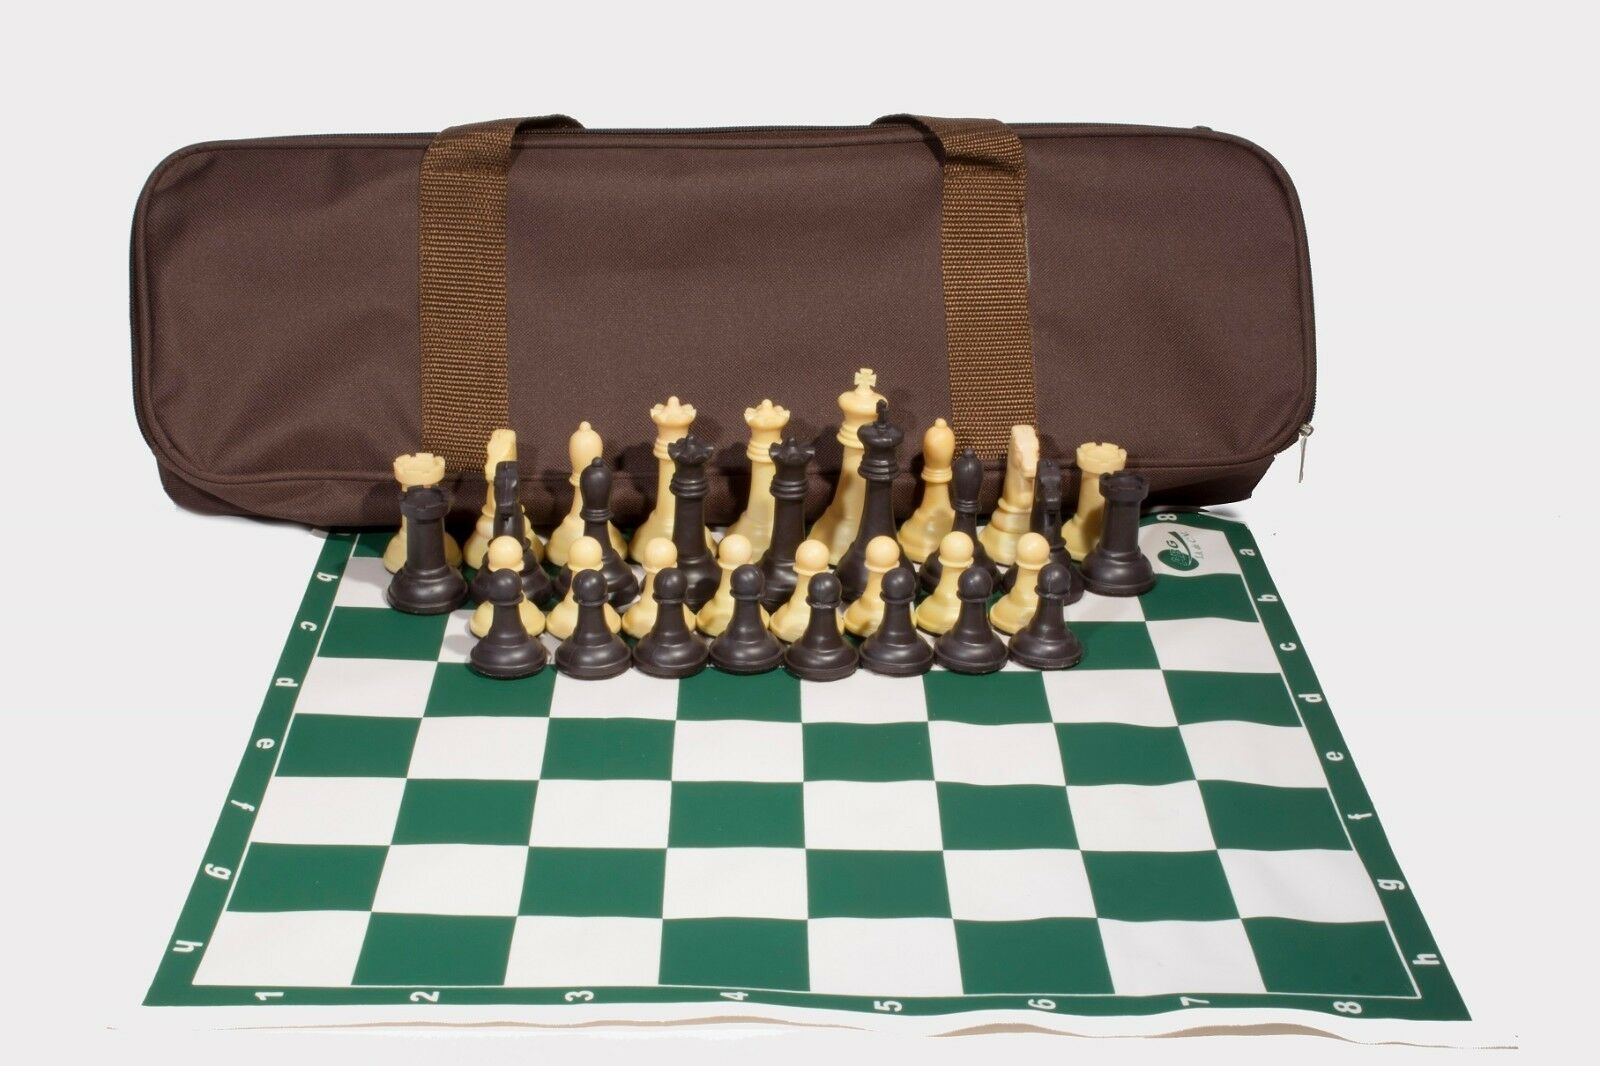 Professional Tournament Chess. 2 Extra Queens. Weight  2.64 Lb. Brown - Beige